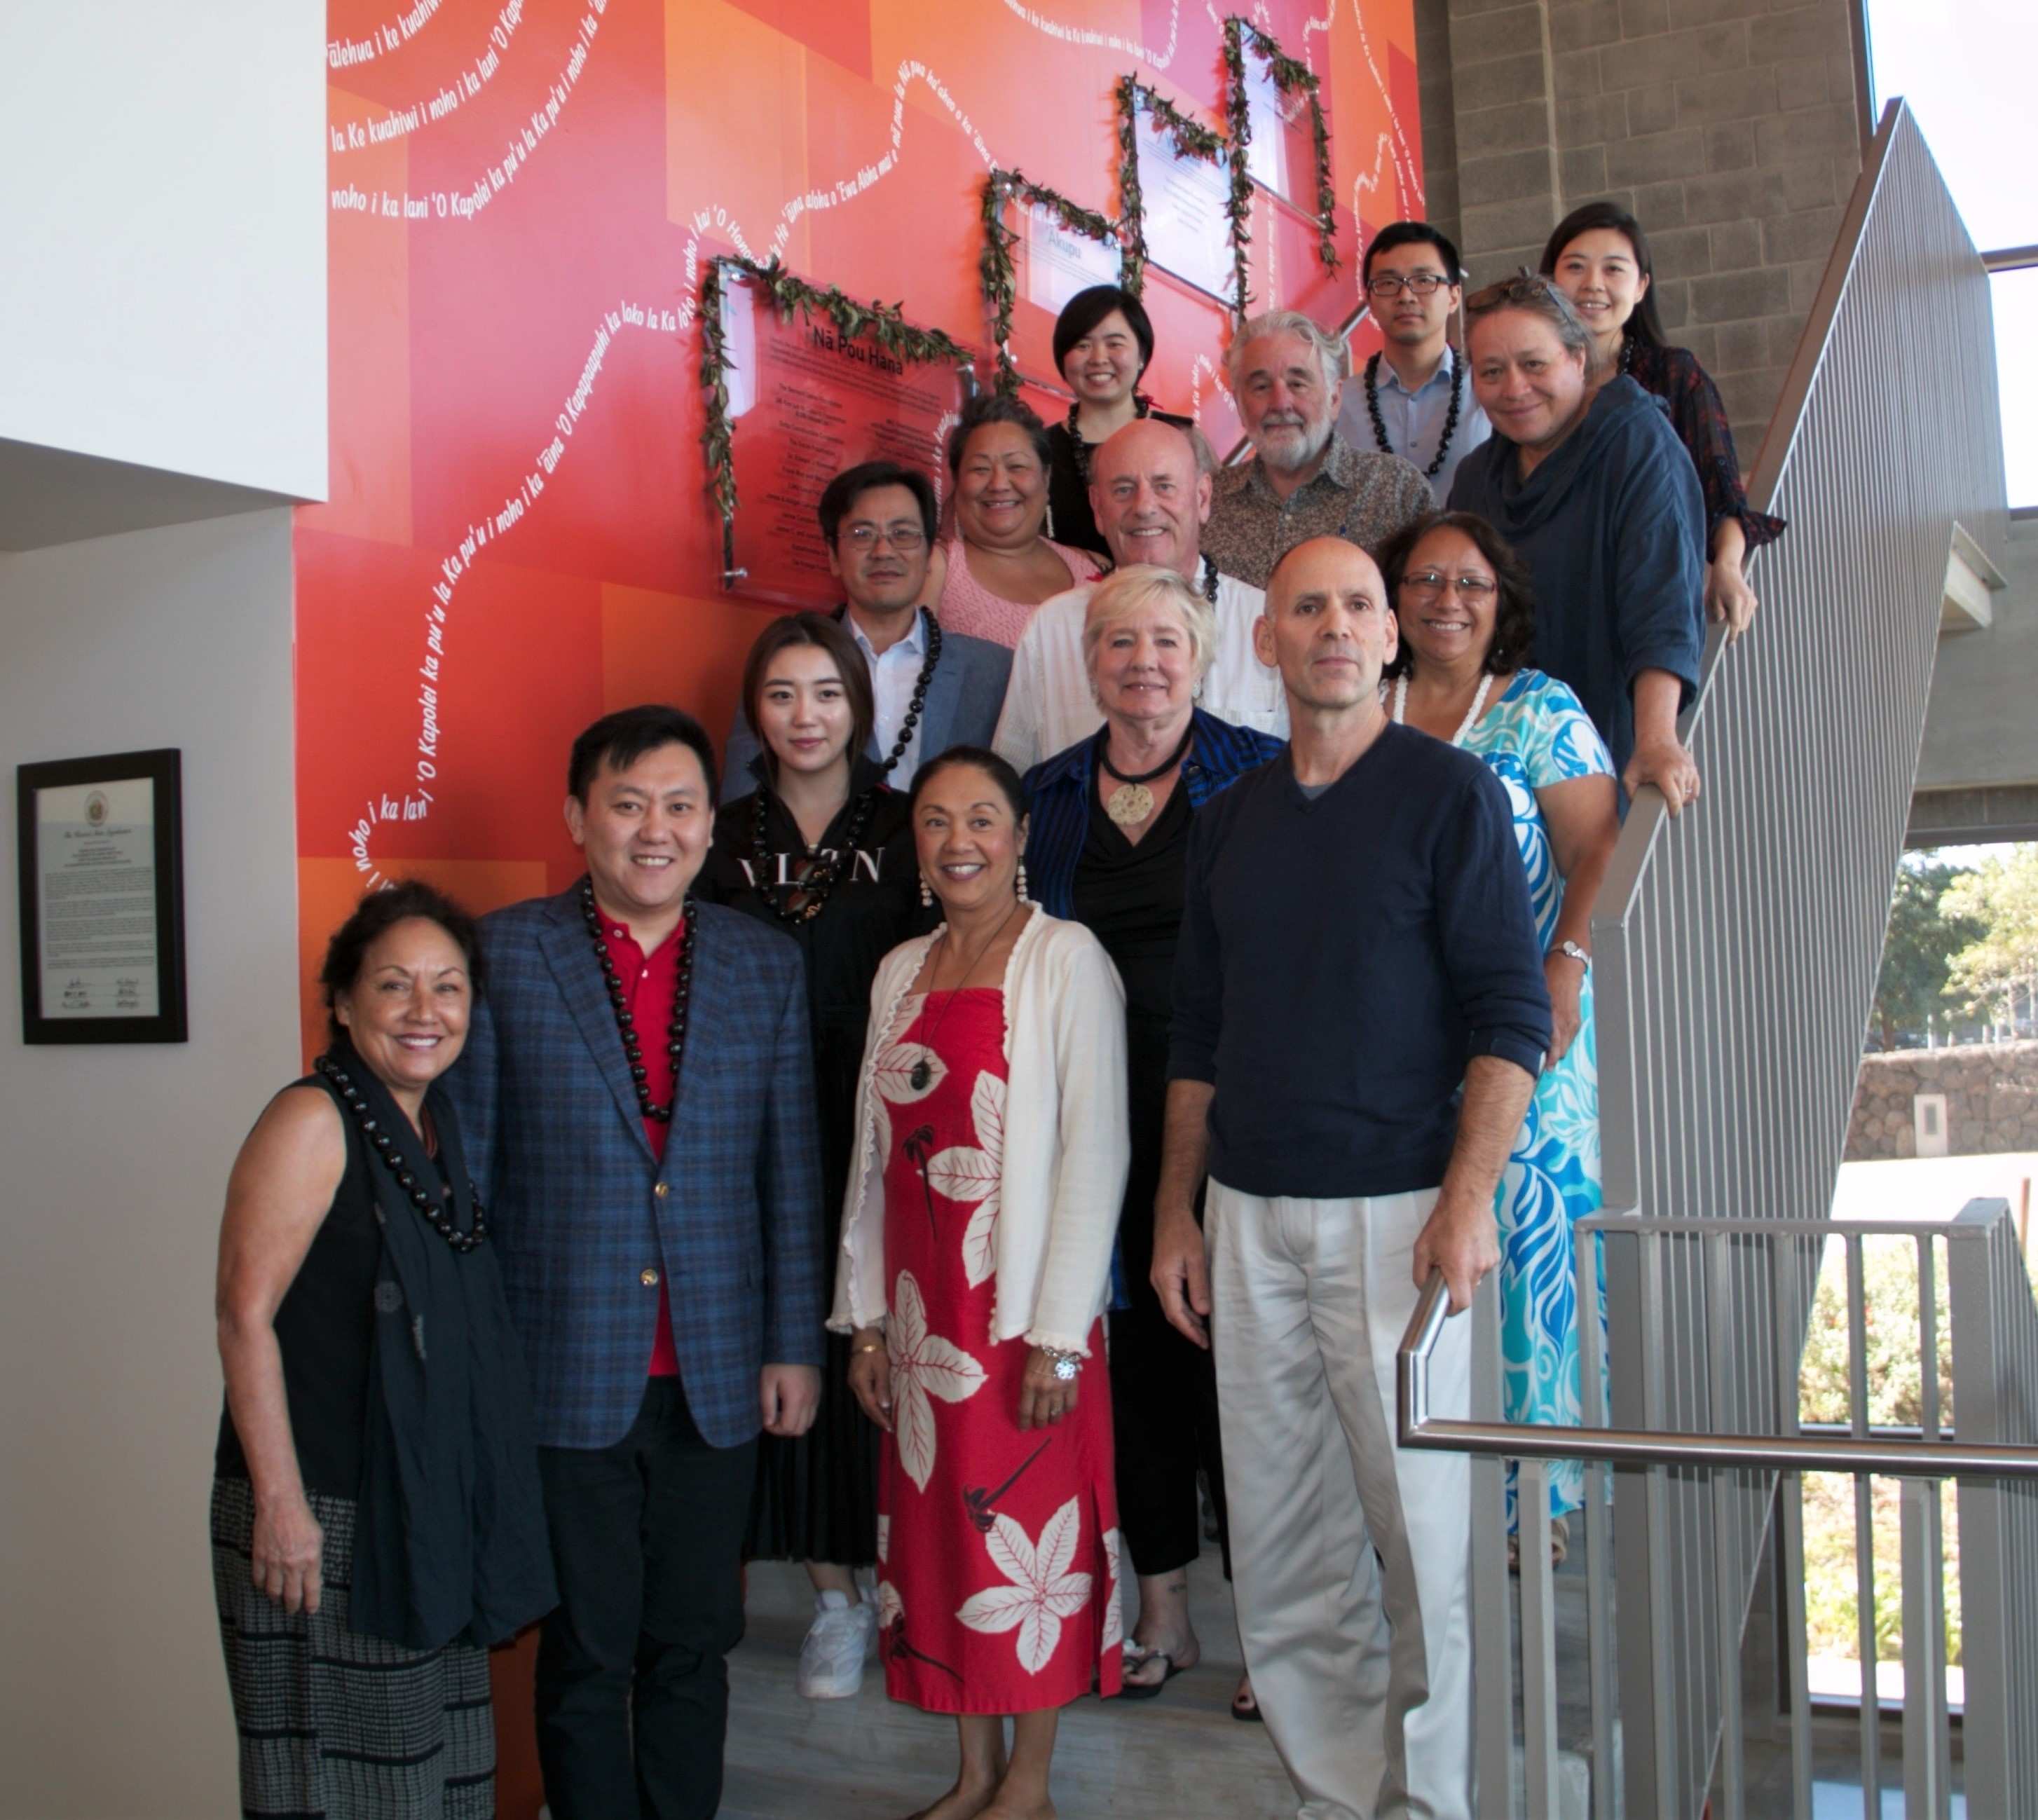 Photo of 14 people standing on stairs in front of an orange wall